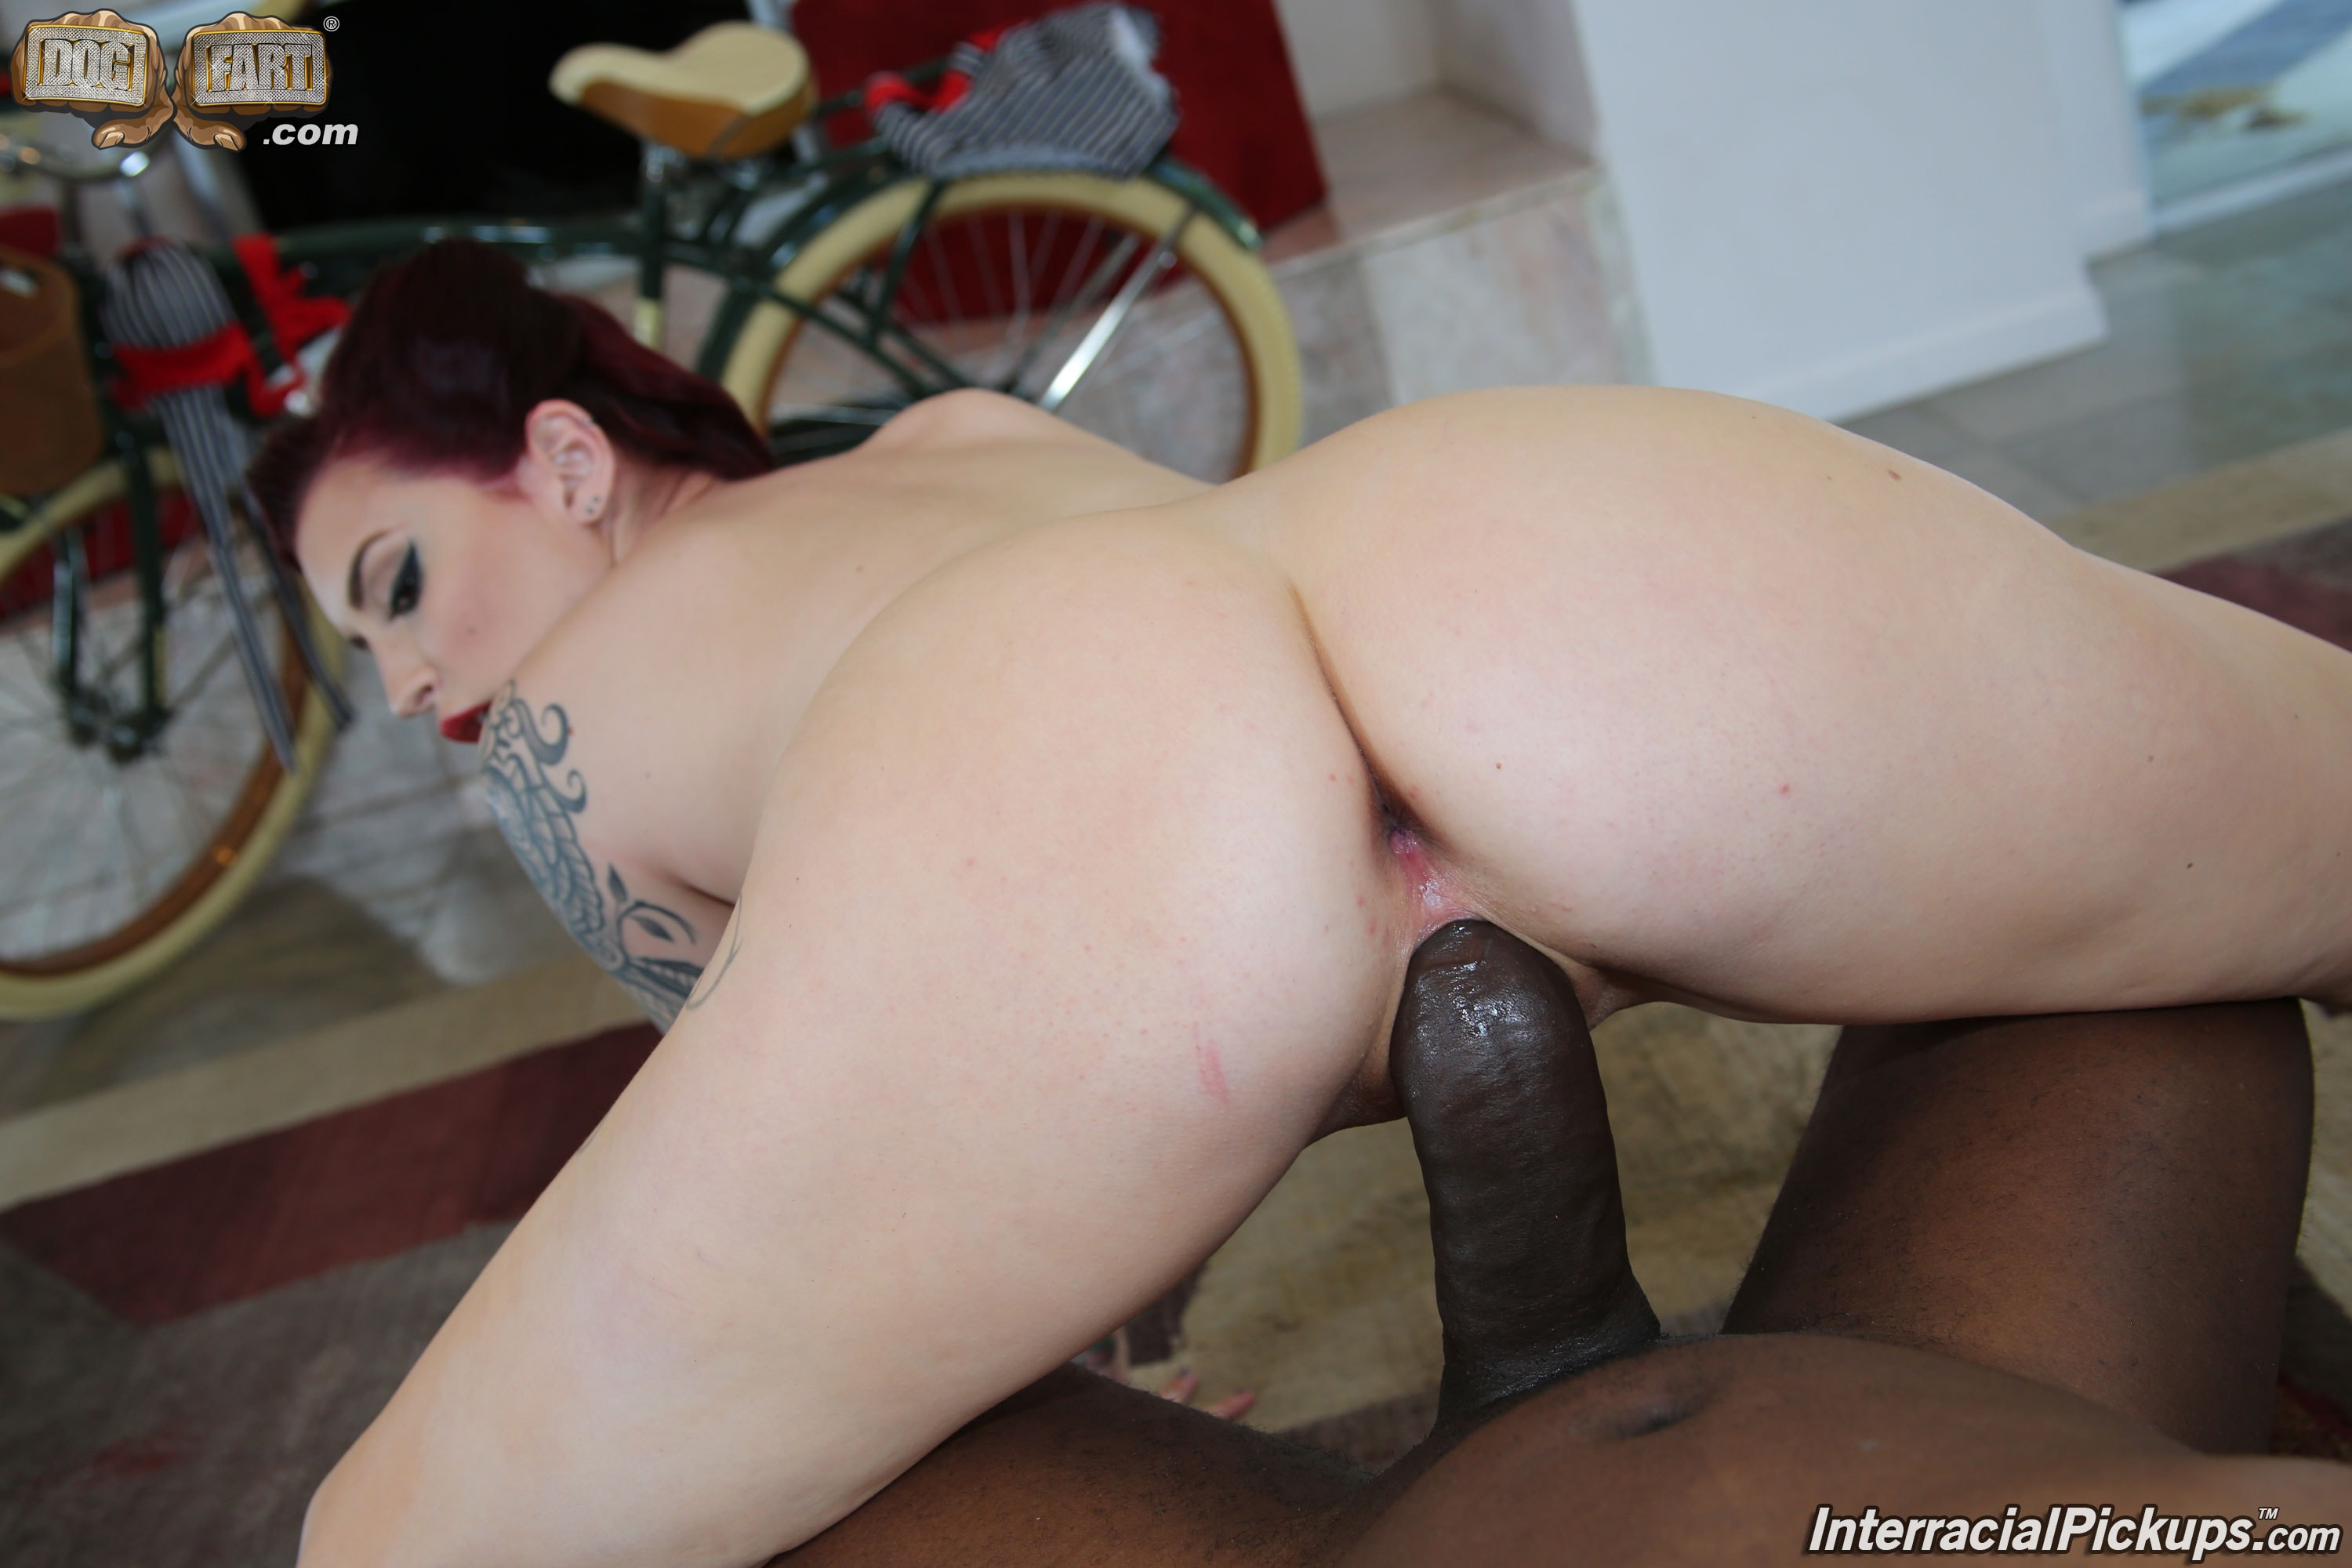 A twin peaks parody gangbang amber ivy free download